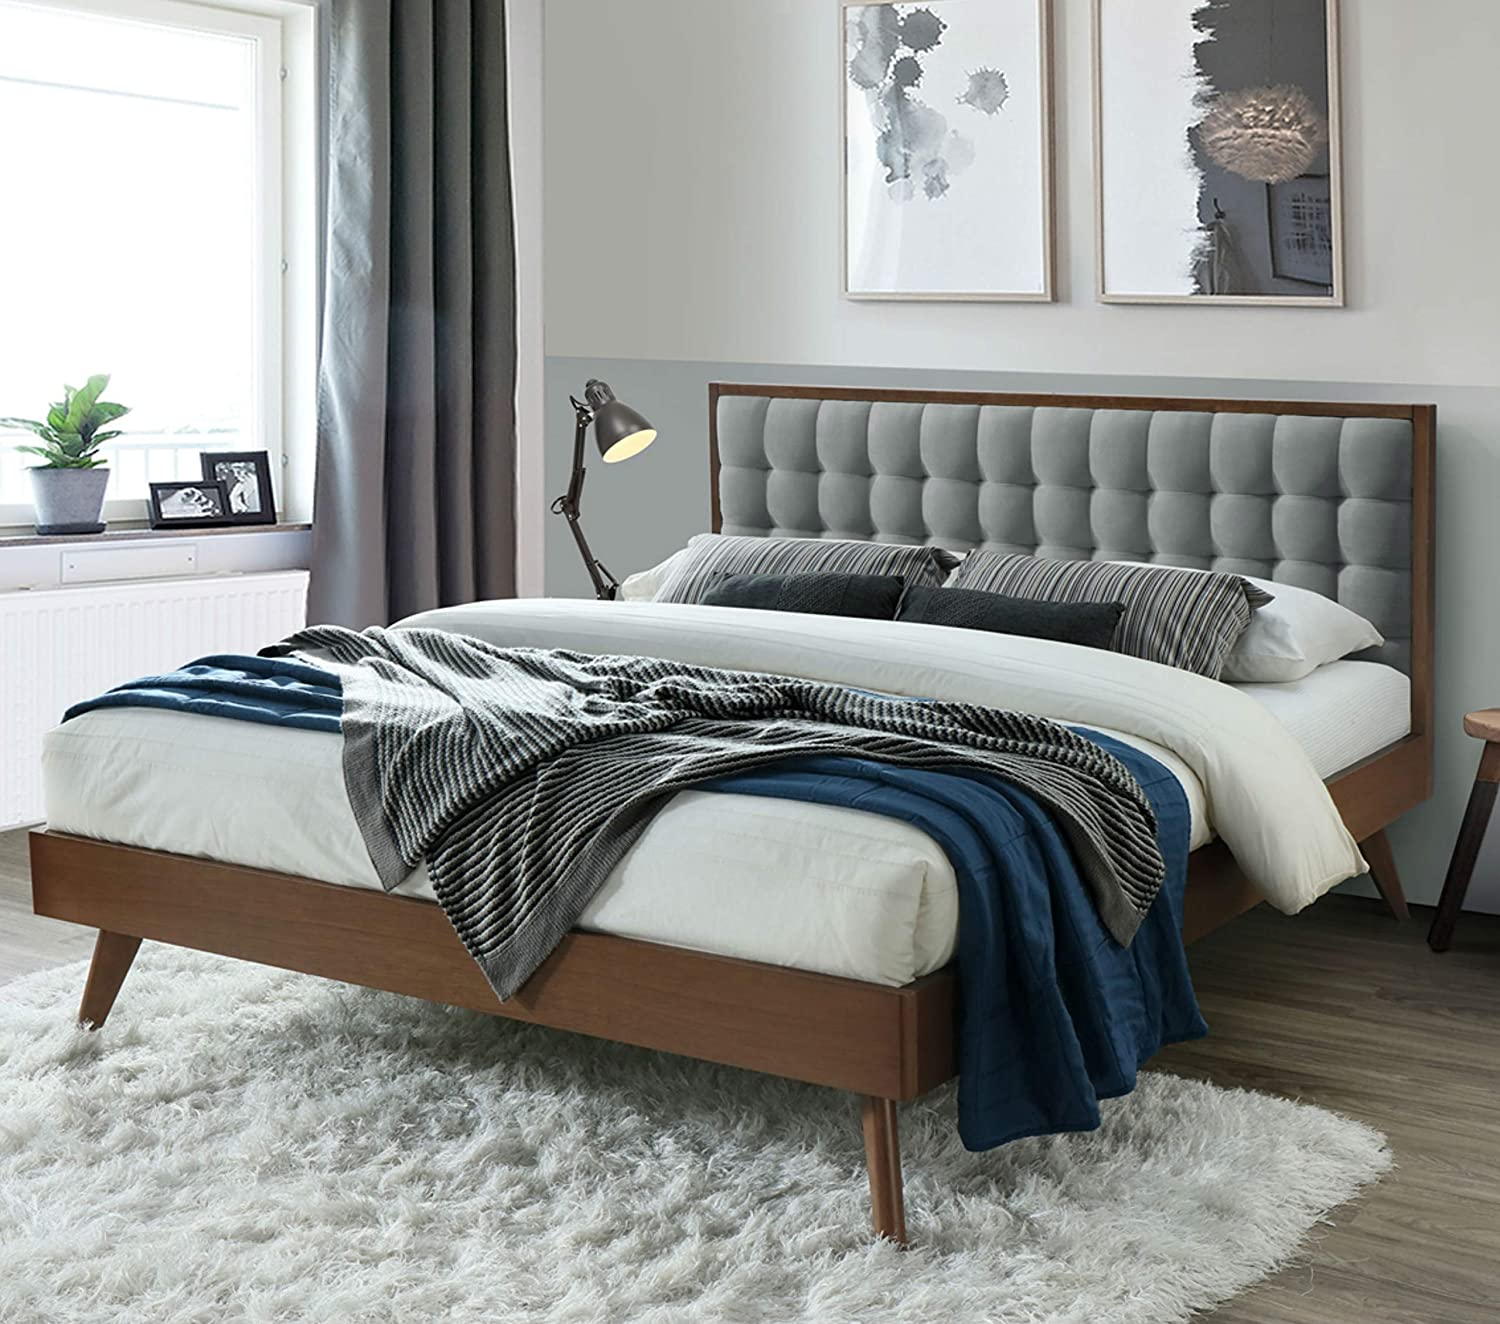 Gold Glass Dining Table, Amazon Com Dg Casa Soloman Mid Century Modern Tufted Upholstered Platform Bed Frame Queen Size In Gray Fabric Furniture Decor